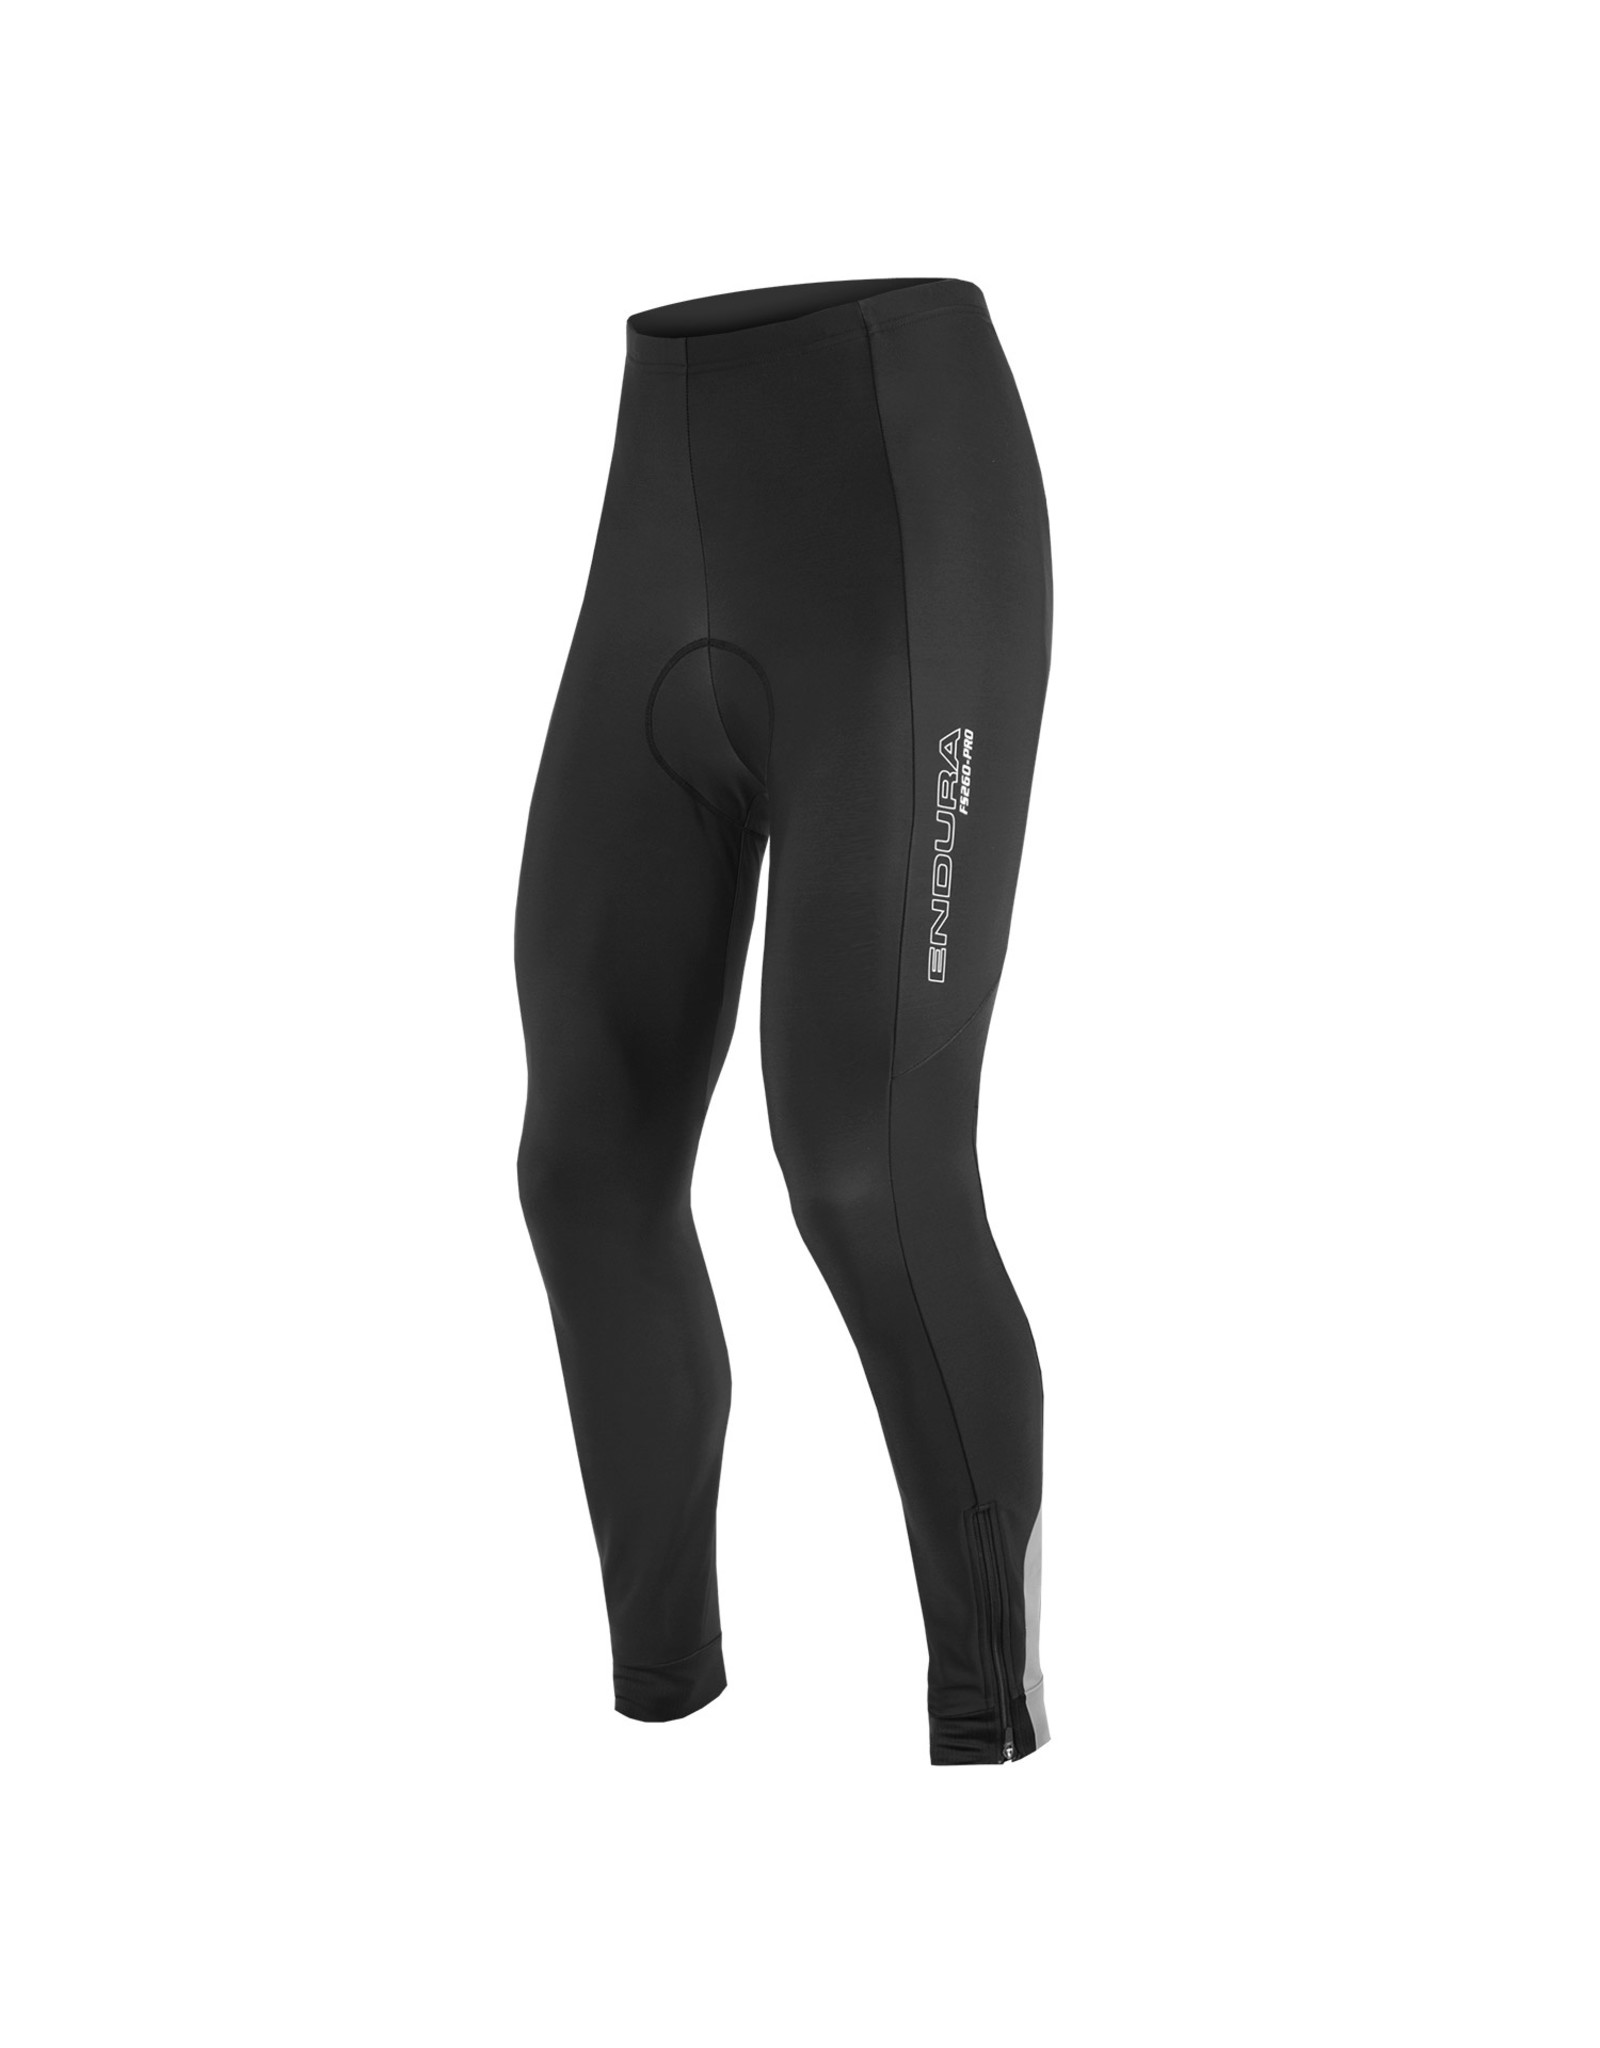 Endura FS260 Pro Thermo Tight, BK: XL